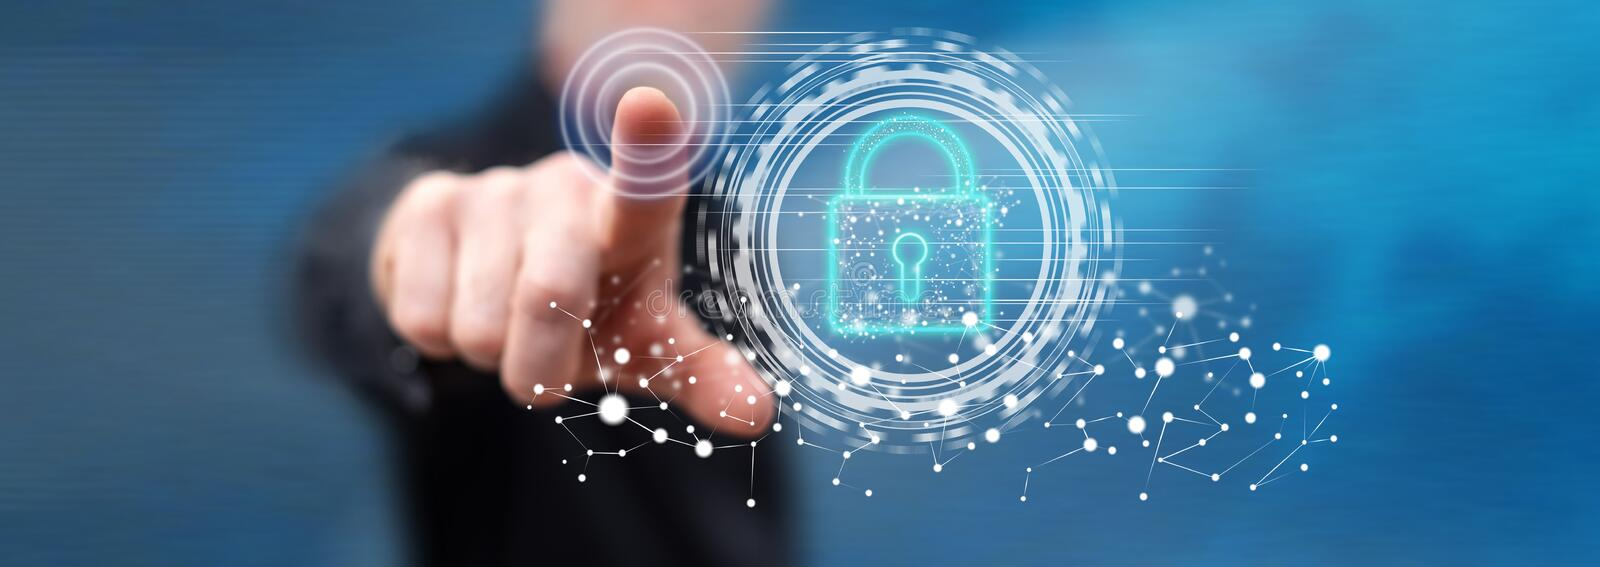 Man touching a digital security concept royalty free stock photos